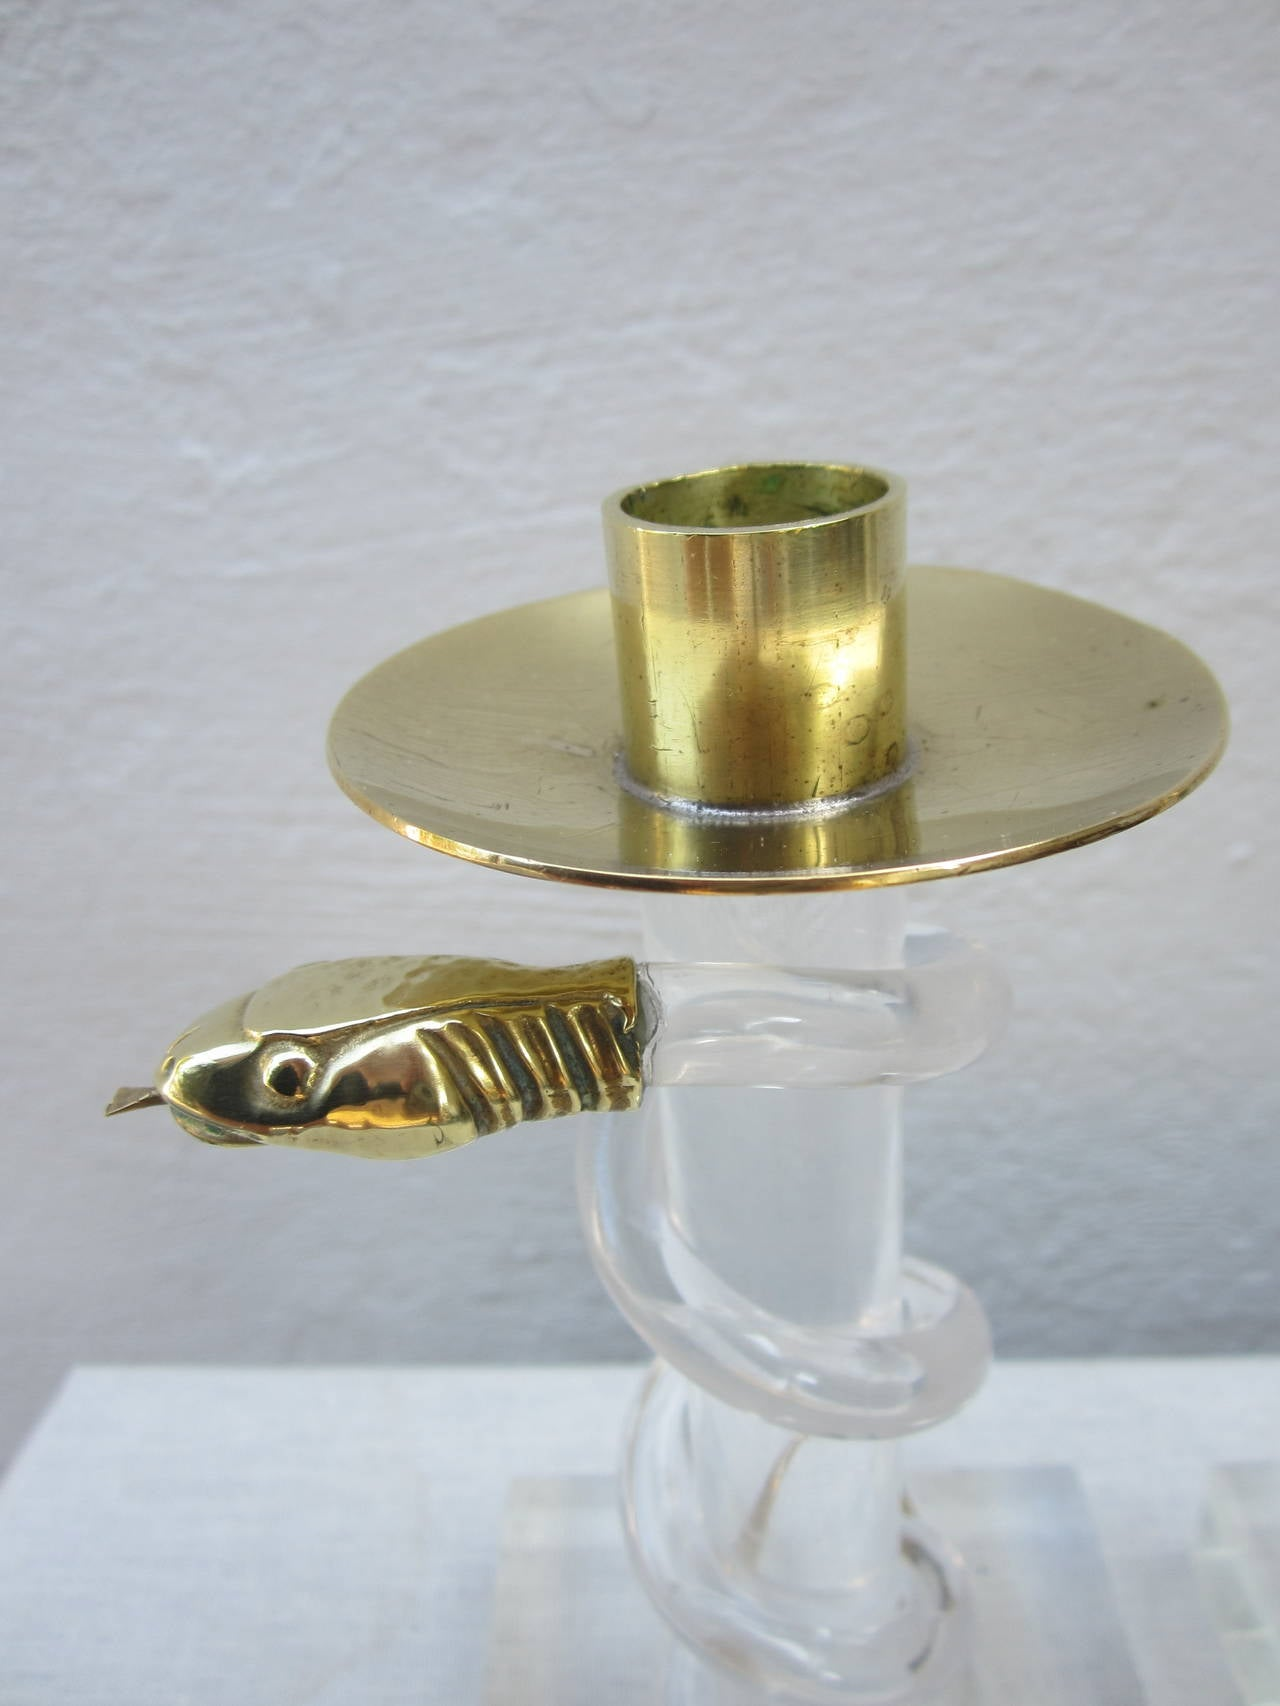 Exotic pair of Lucite and brass snake candlesticks by Allesandro Albrizzi.